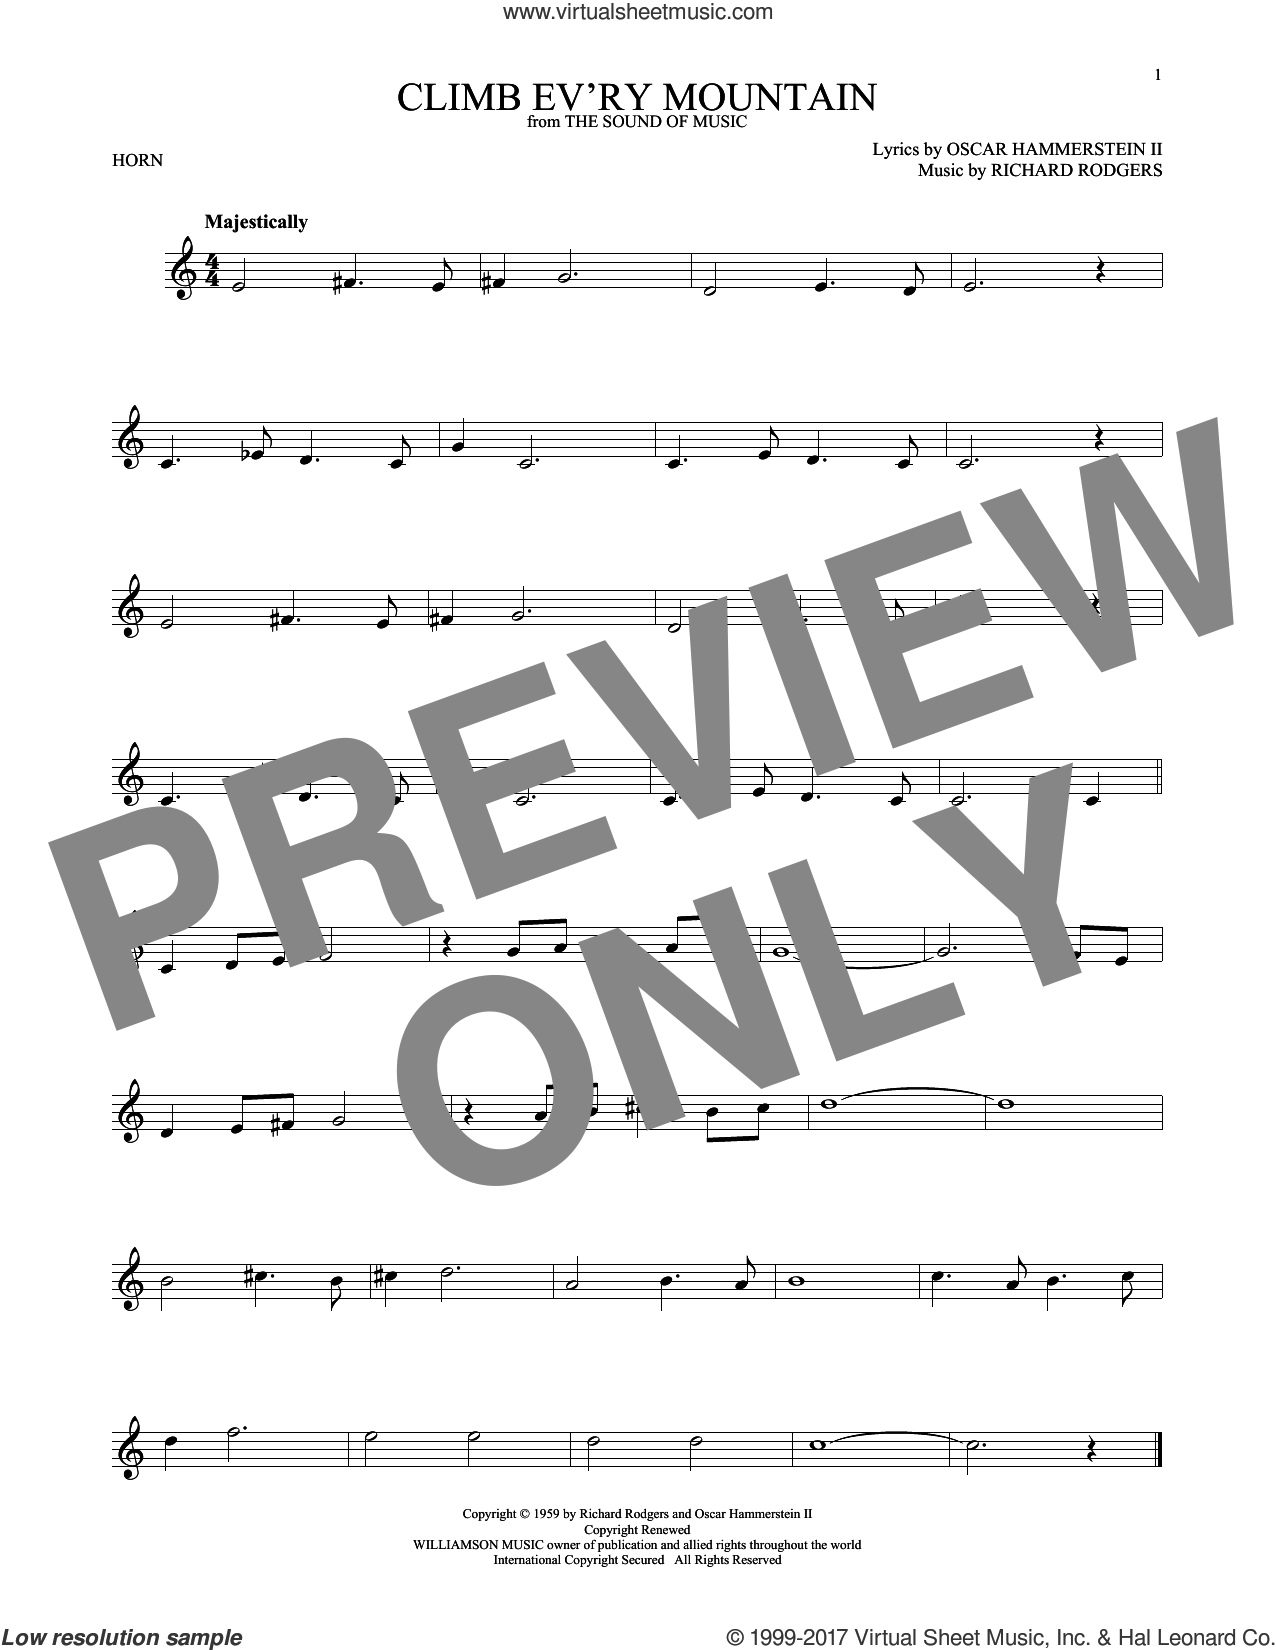 Climb Ev'ry Mountain sheet music for horn solo by Rodgers & Hammerstein, Oscar II Hammerstein and Richard Rodgers, intermediate skill level